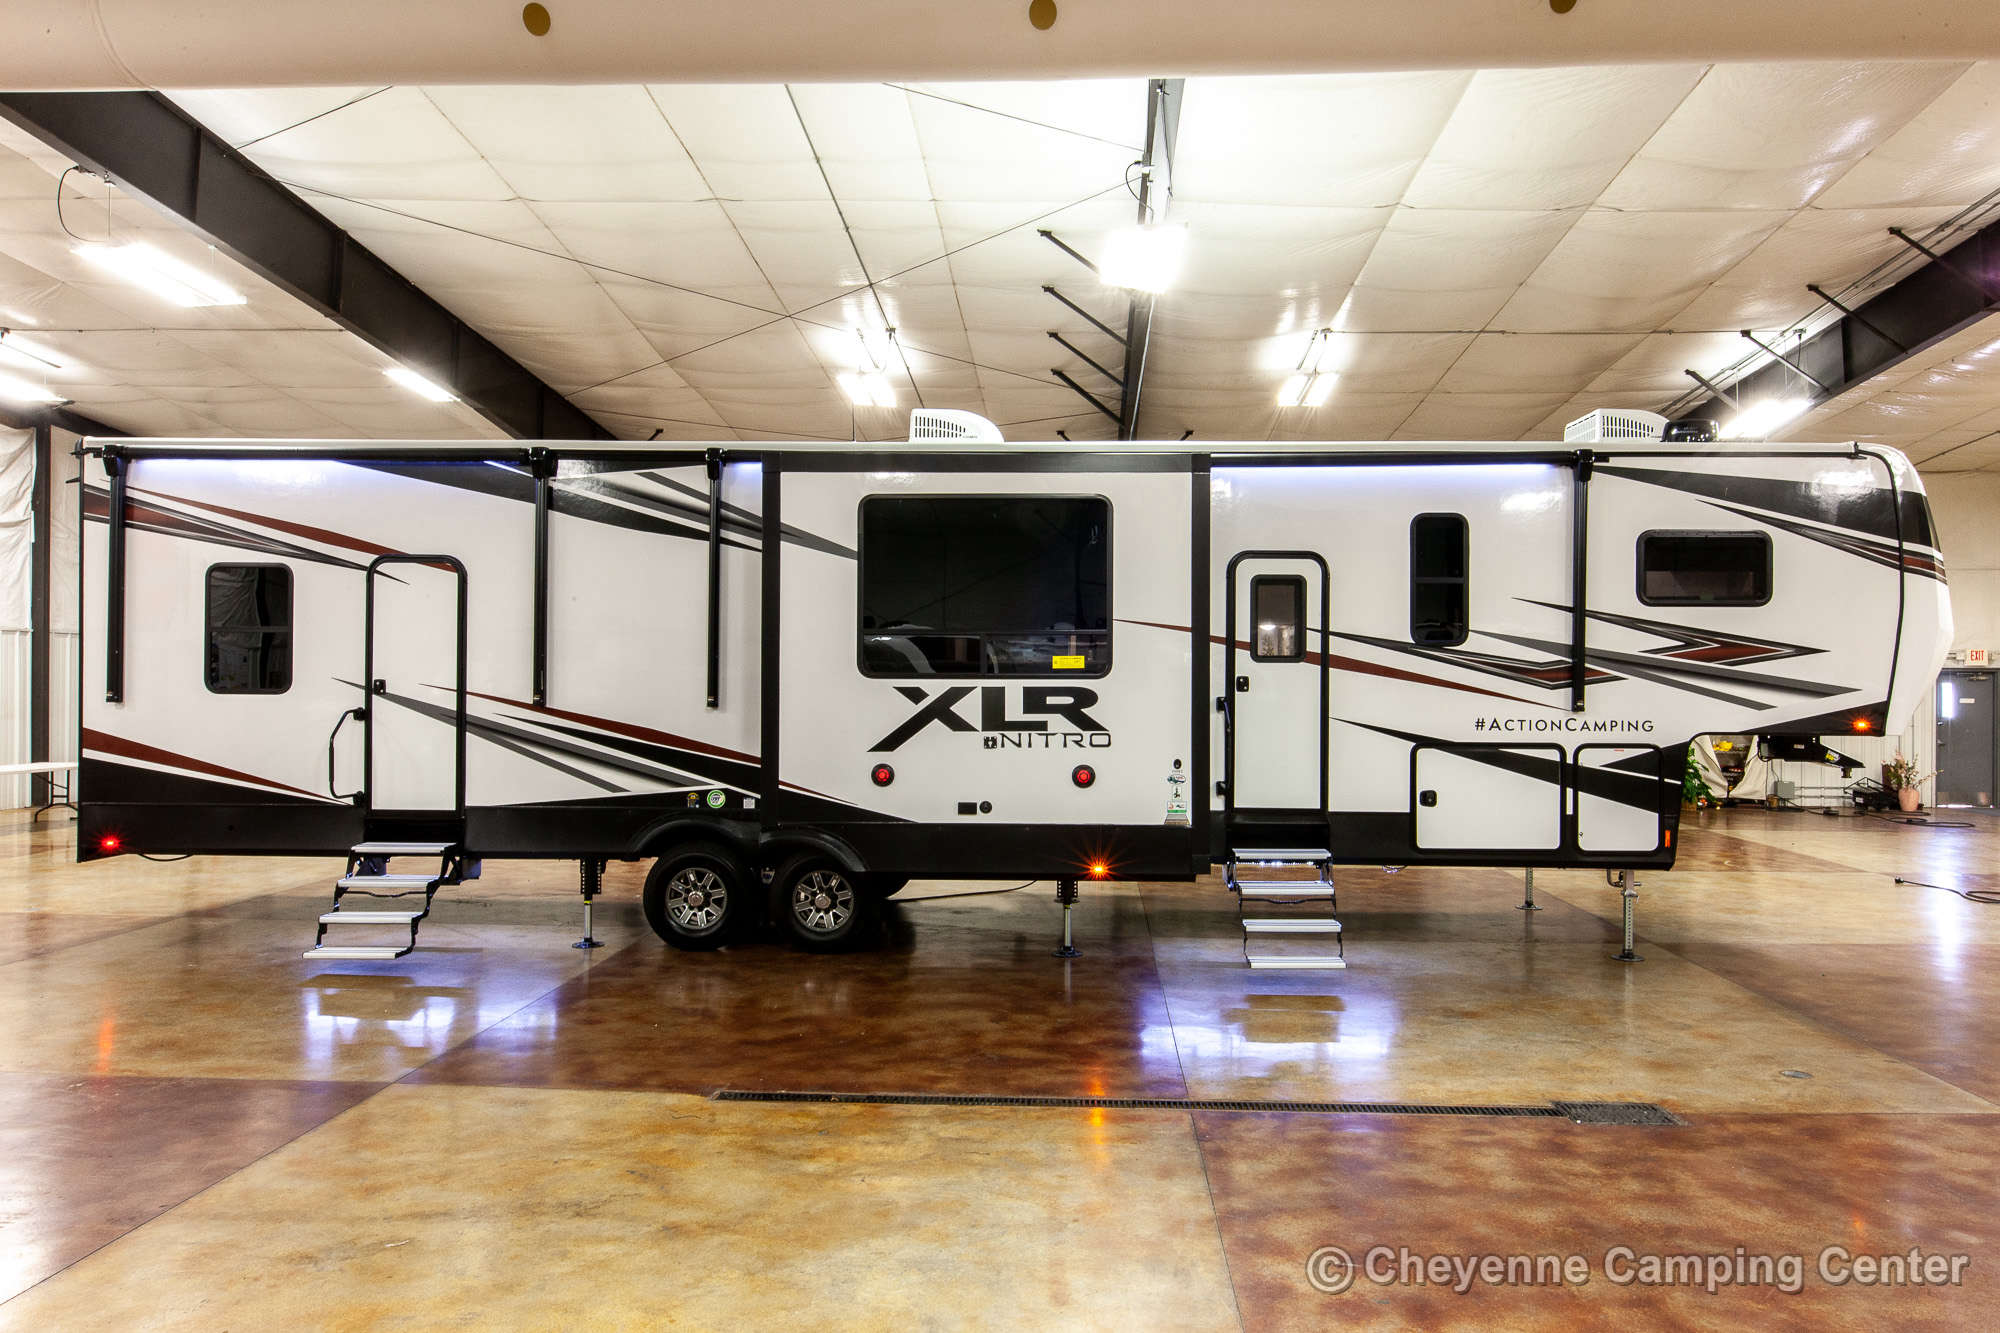 2021 Forest River XLR Nitro 35DK5 Bunkhouse Toy Hauler Fifth Wheel Exterior Image